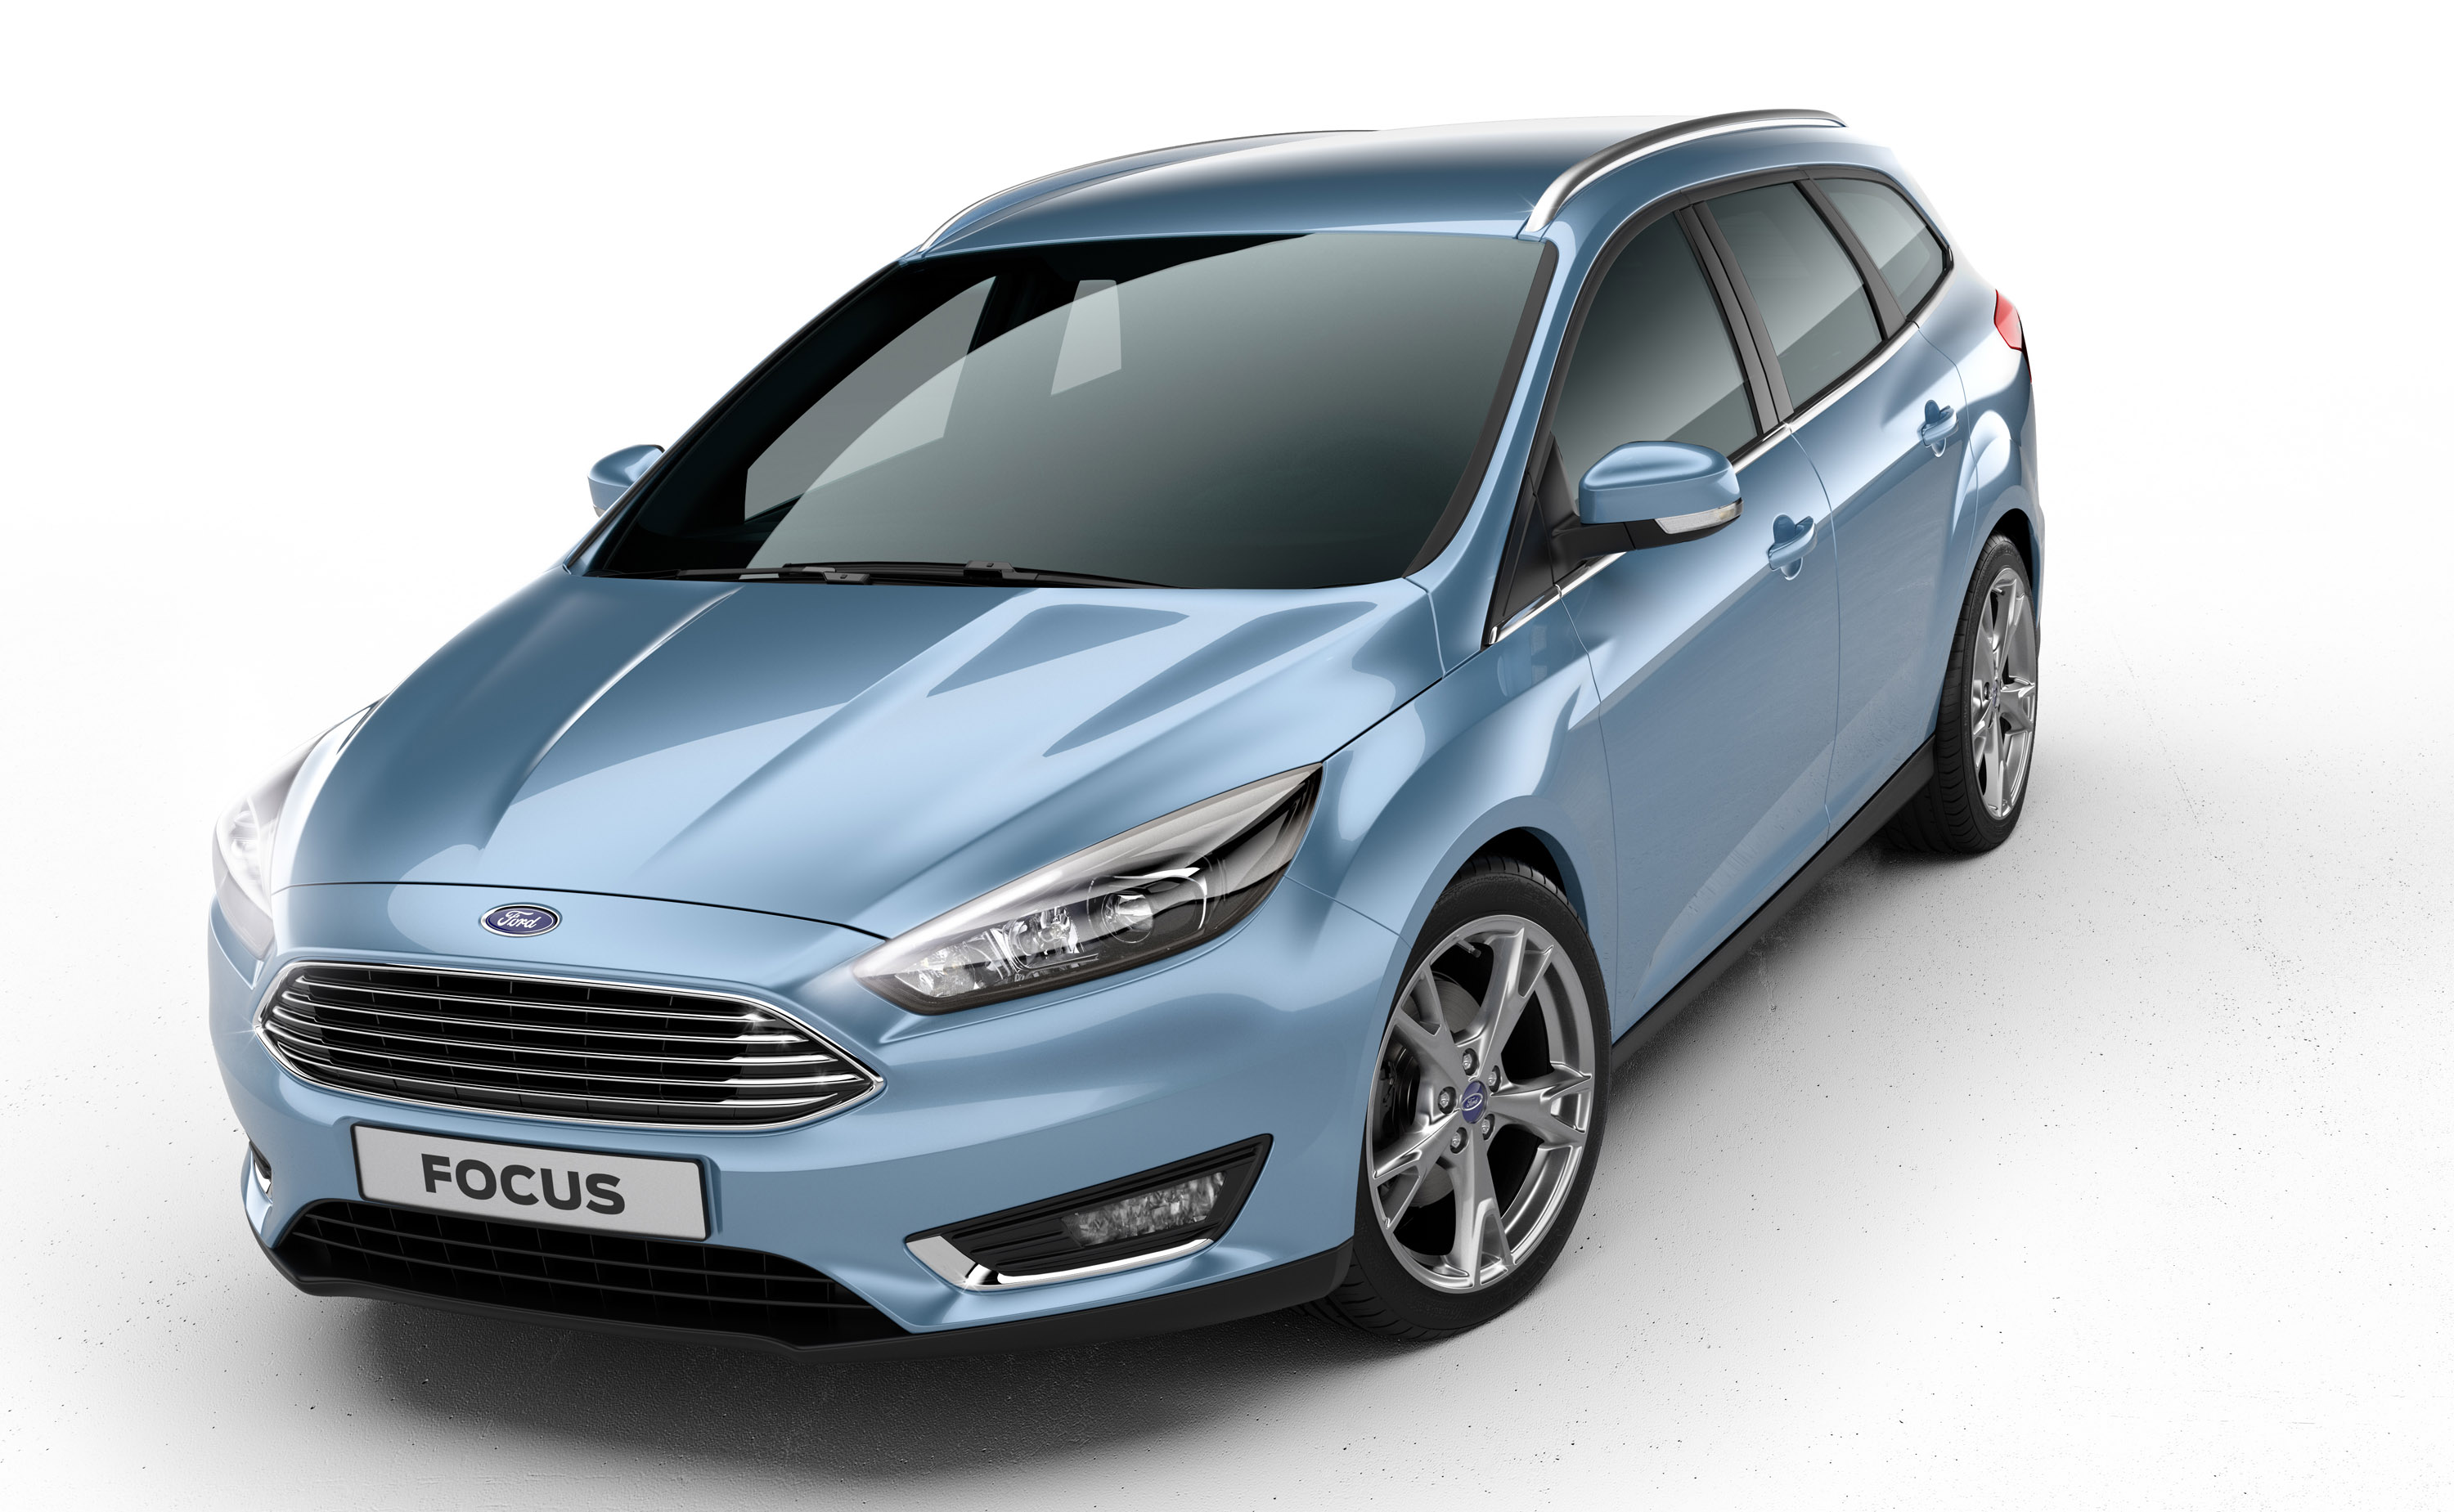 2014 ford focus facelift updated engine range. Black Bedroom Furniture Sets. Home Design Ideas